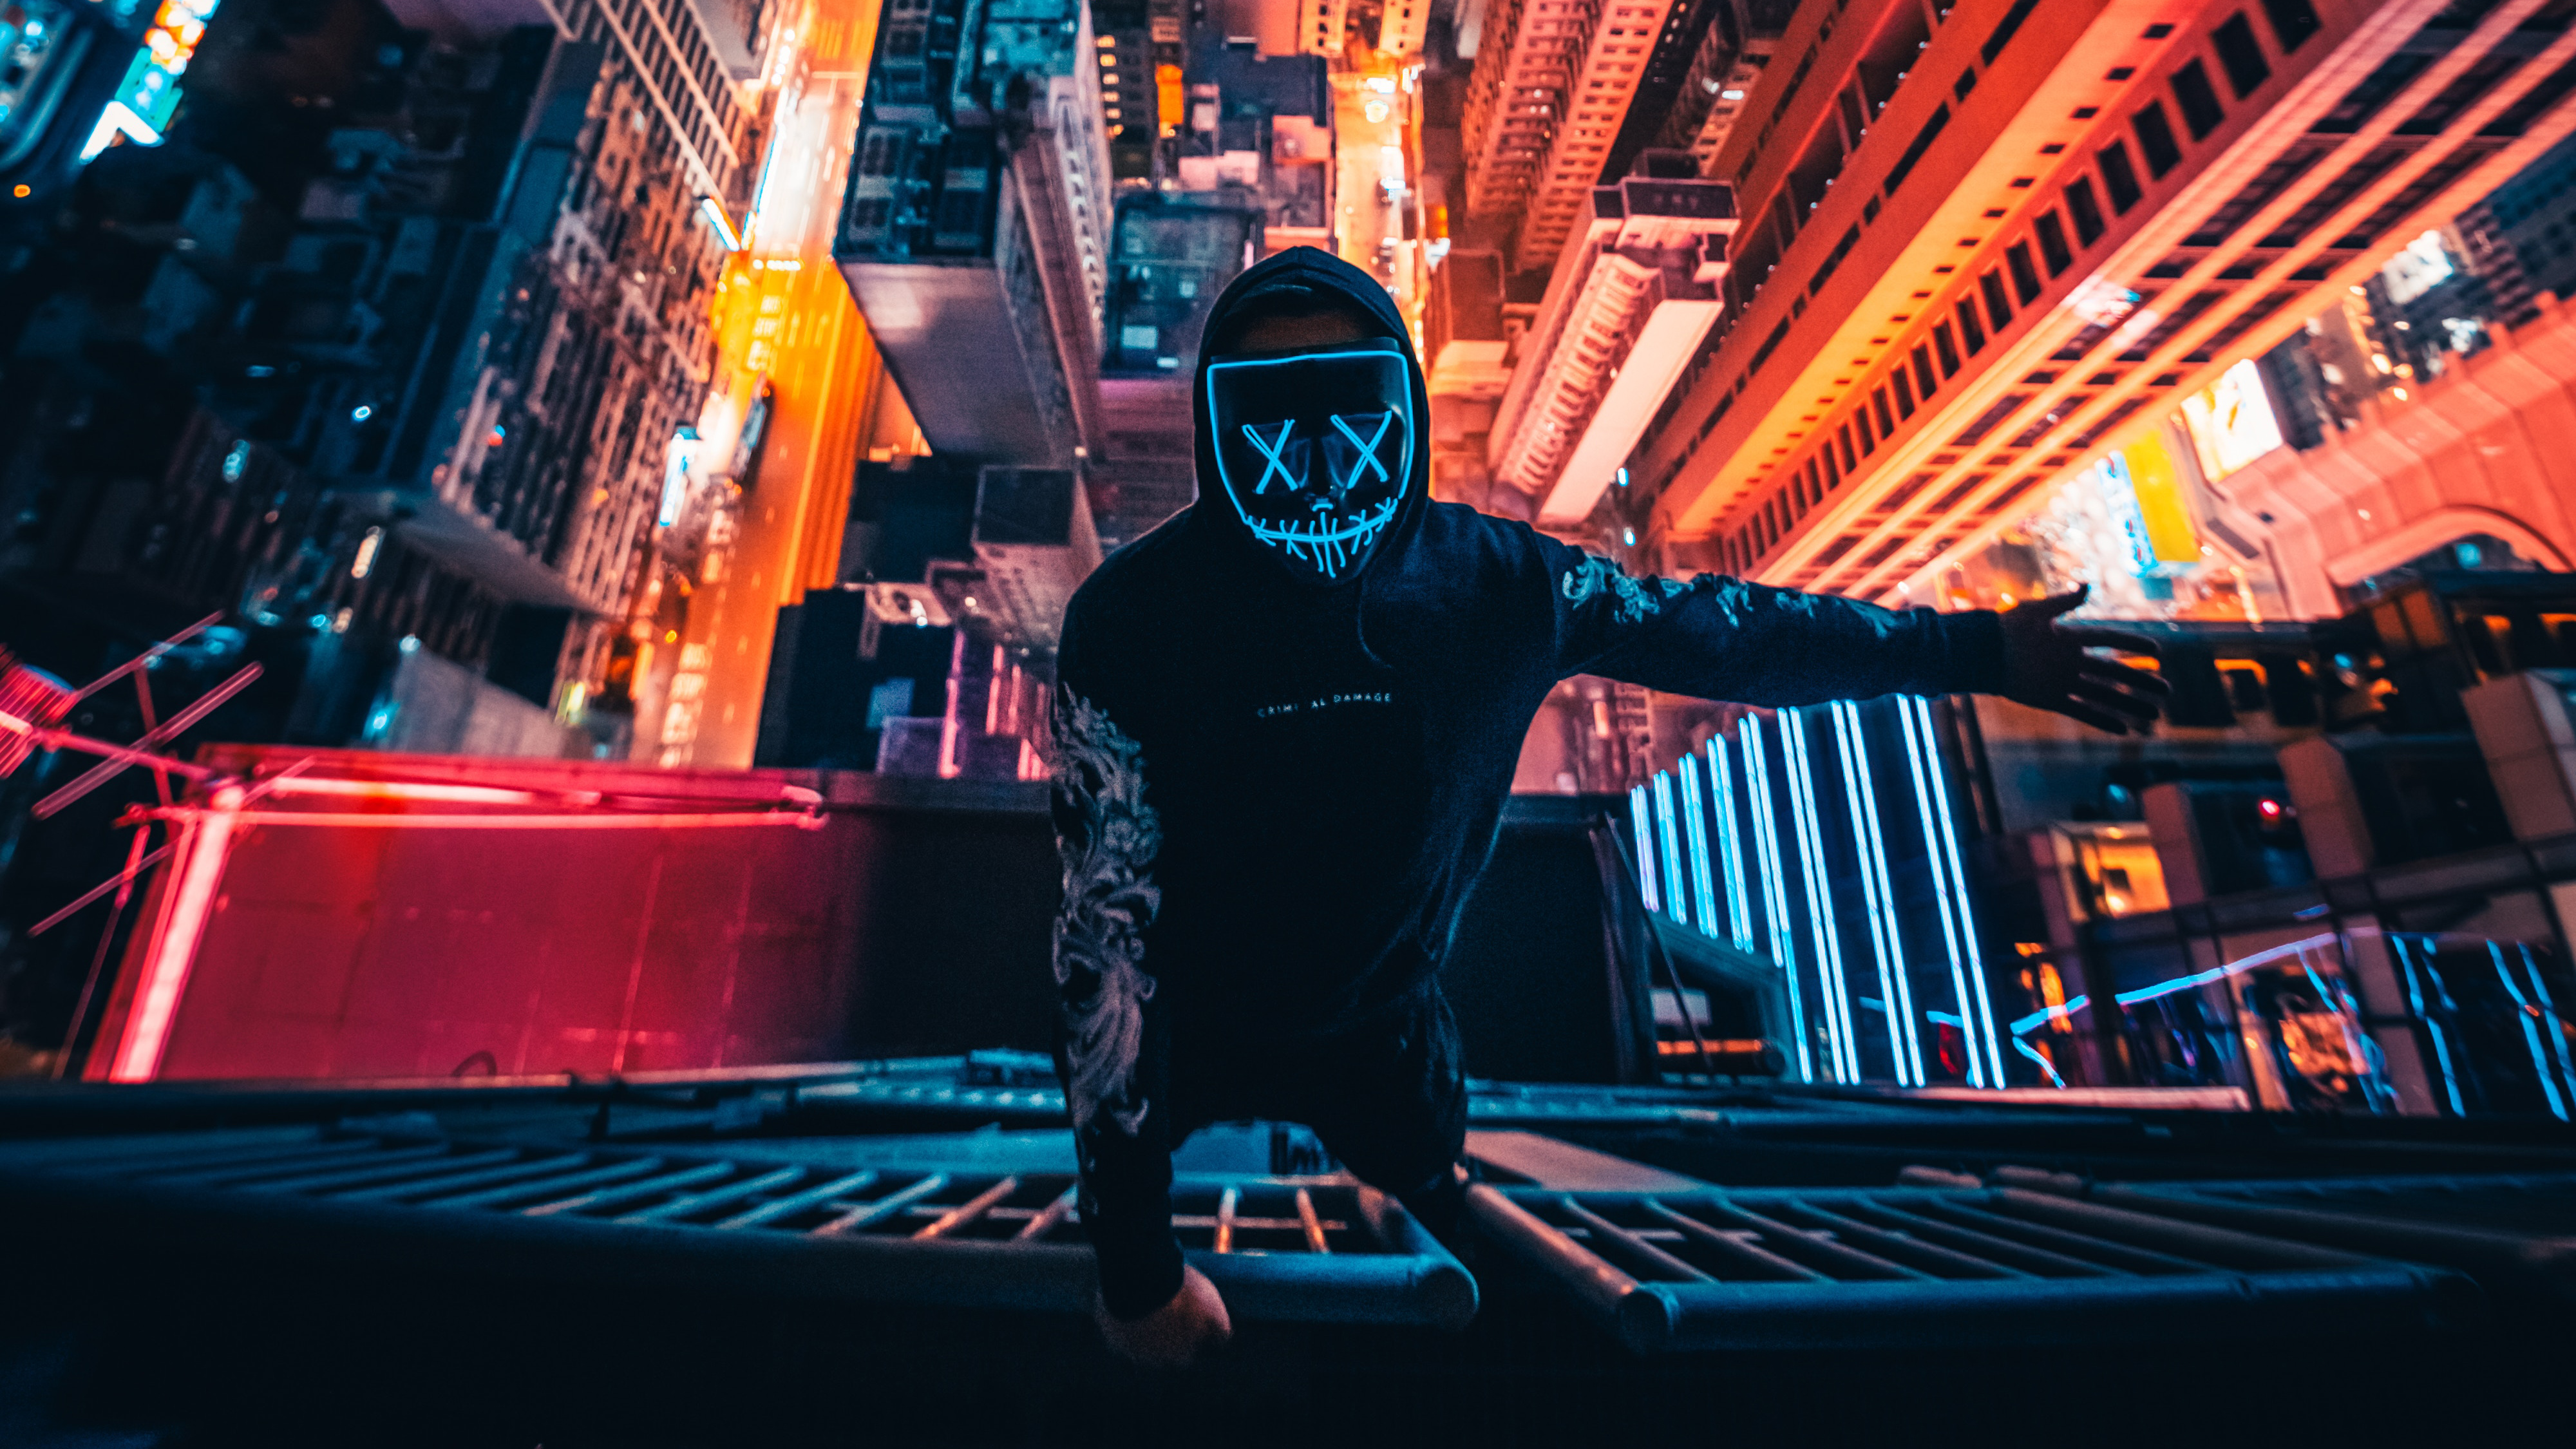 Cool Neon Cars Wallpapers Neon Mask Guy Climbing Building 4k Hd Photography 4k